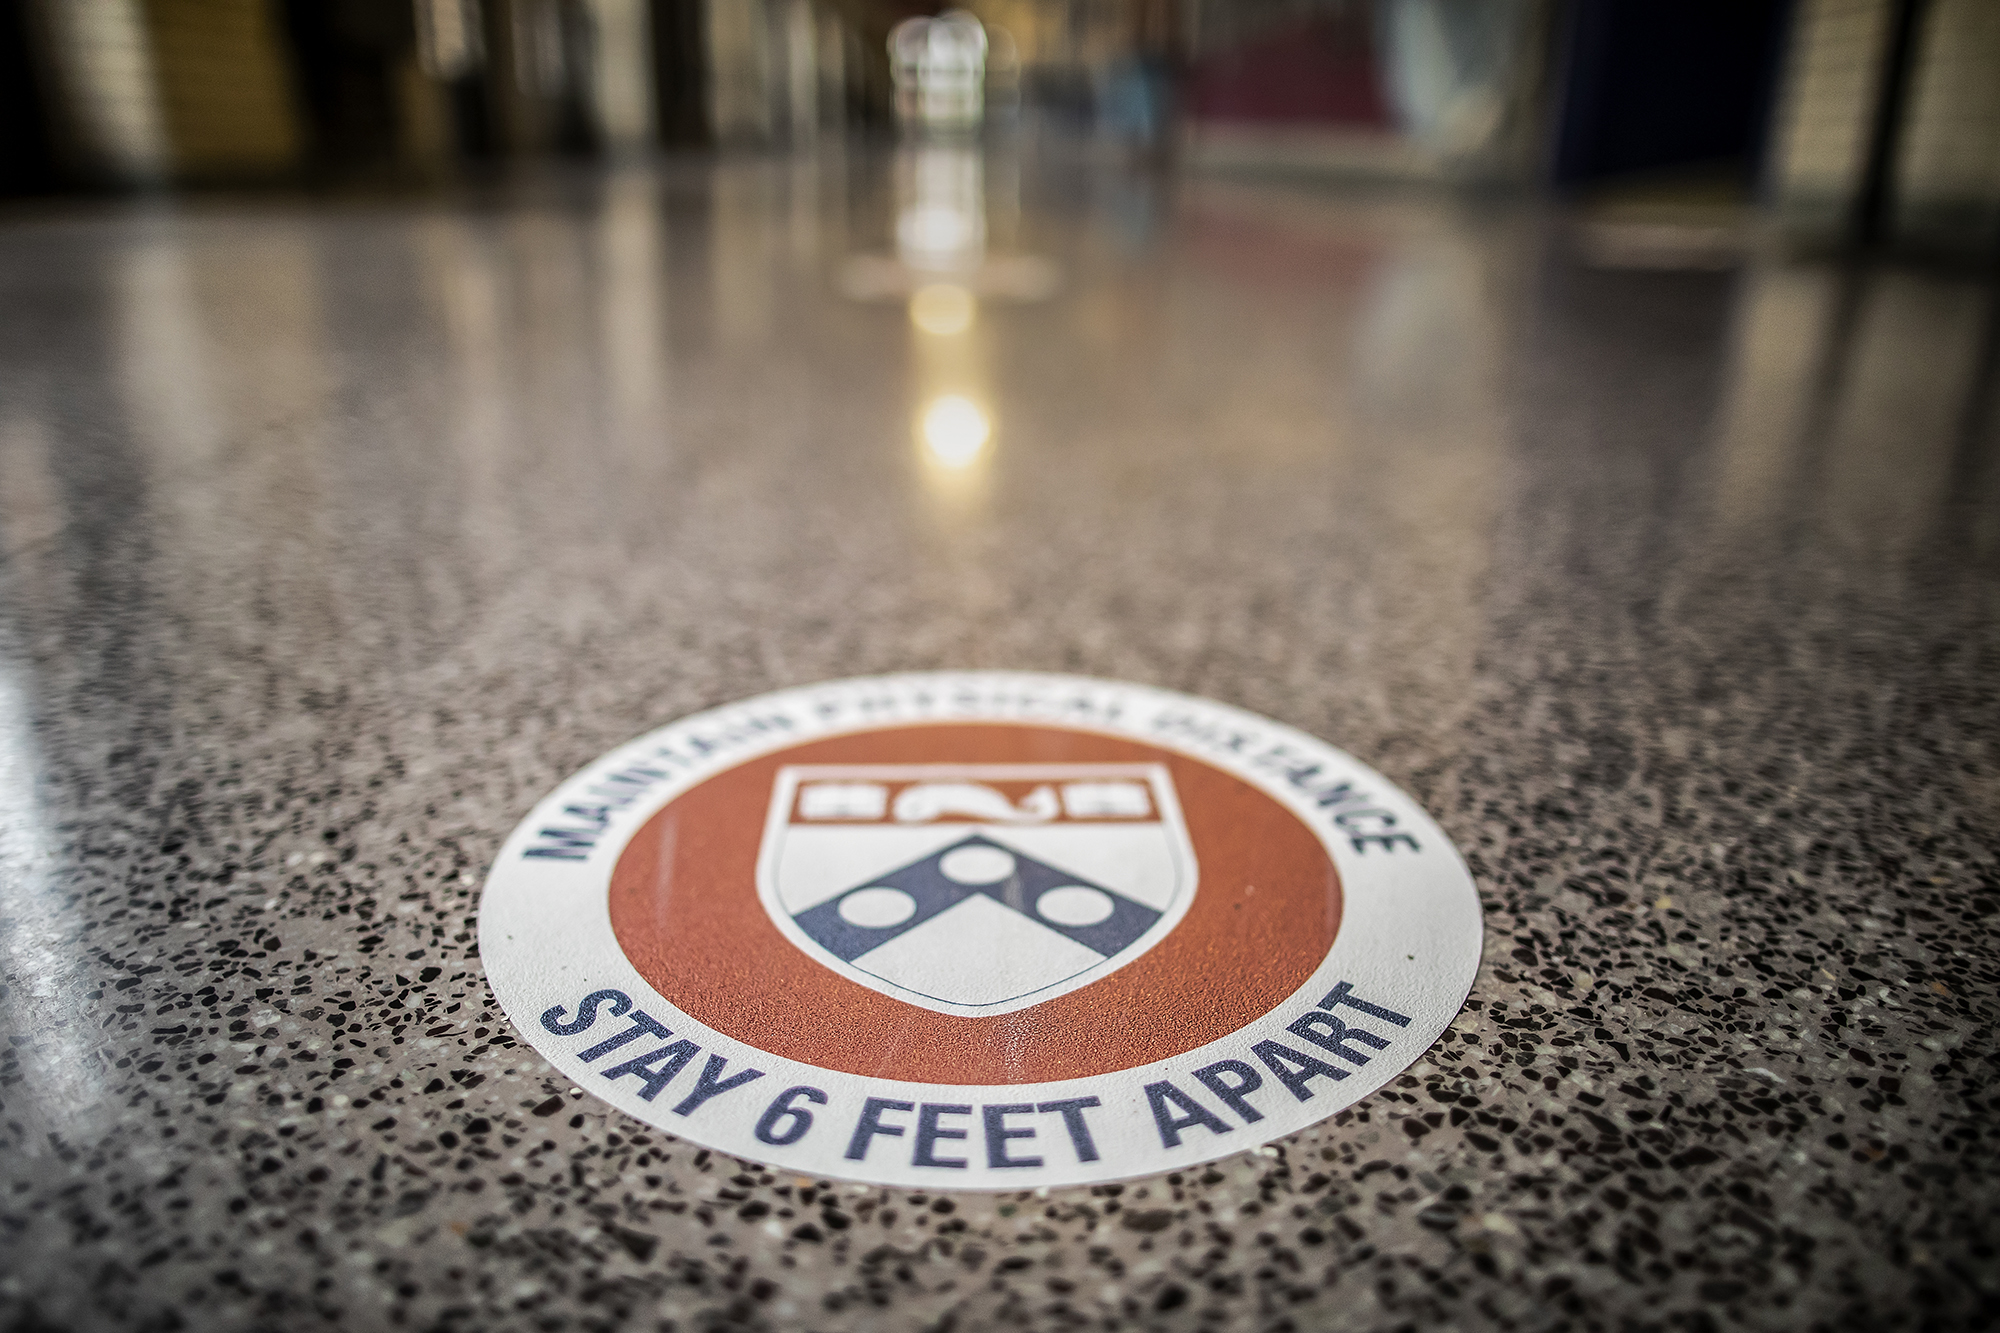 A round decal on the floor that reads MAINTAIN SOCIAL DISTANCE STAY SIX FEET APART surrounding the Penn shield logo.